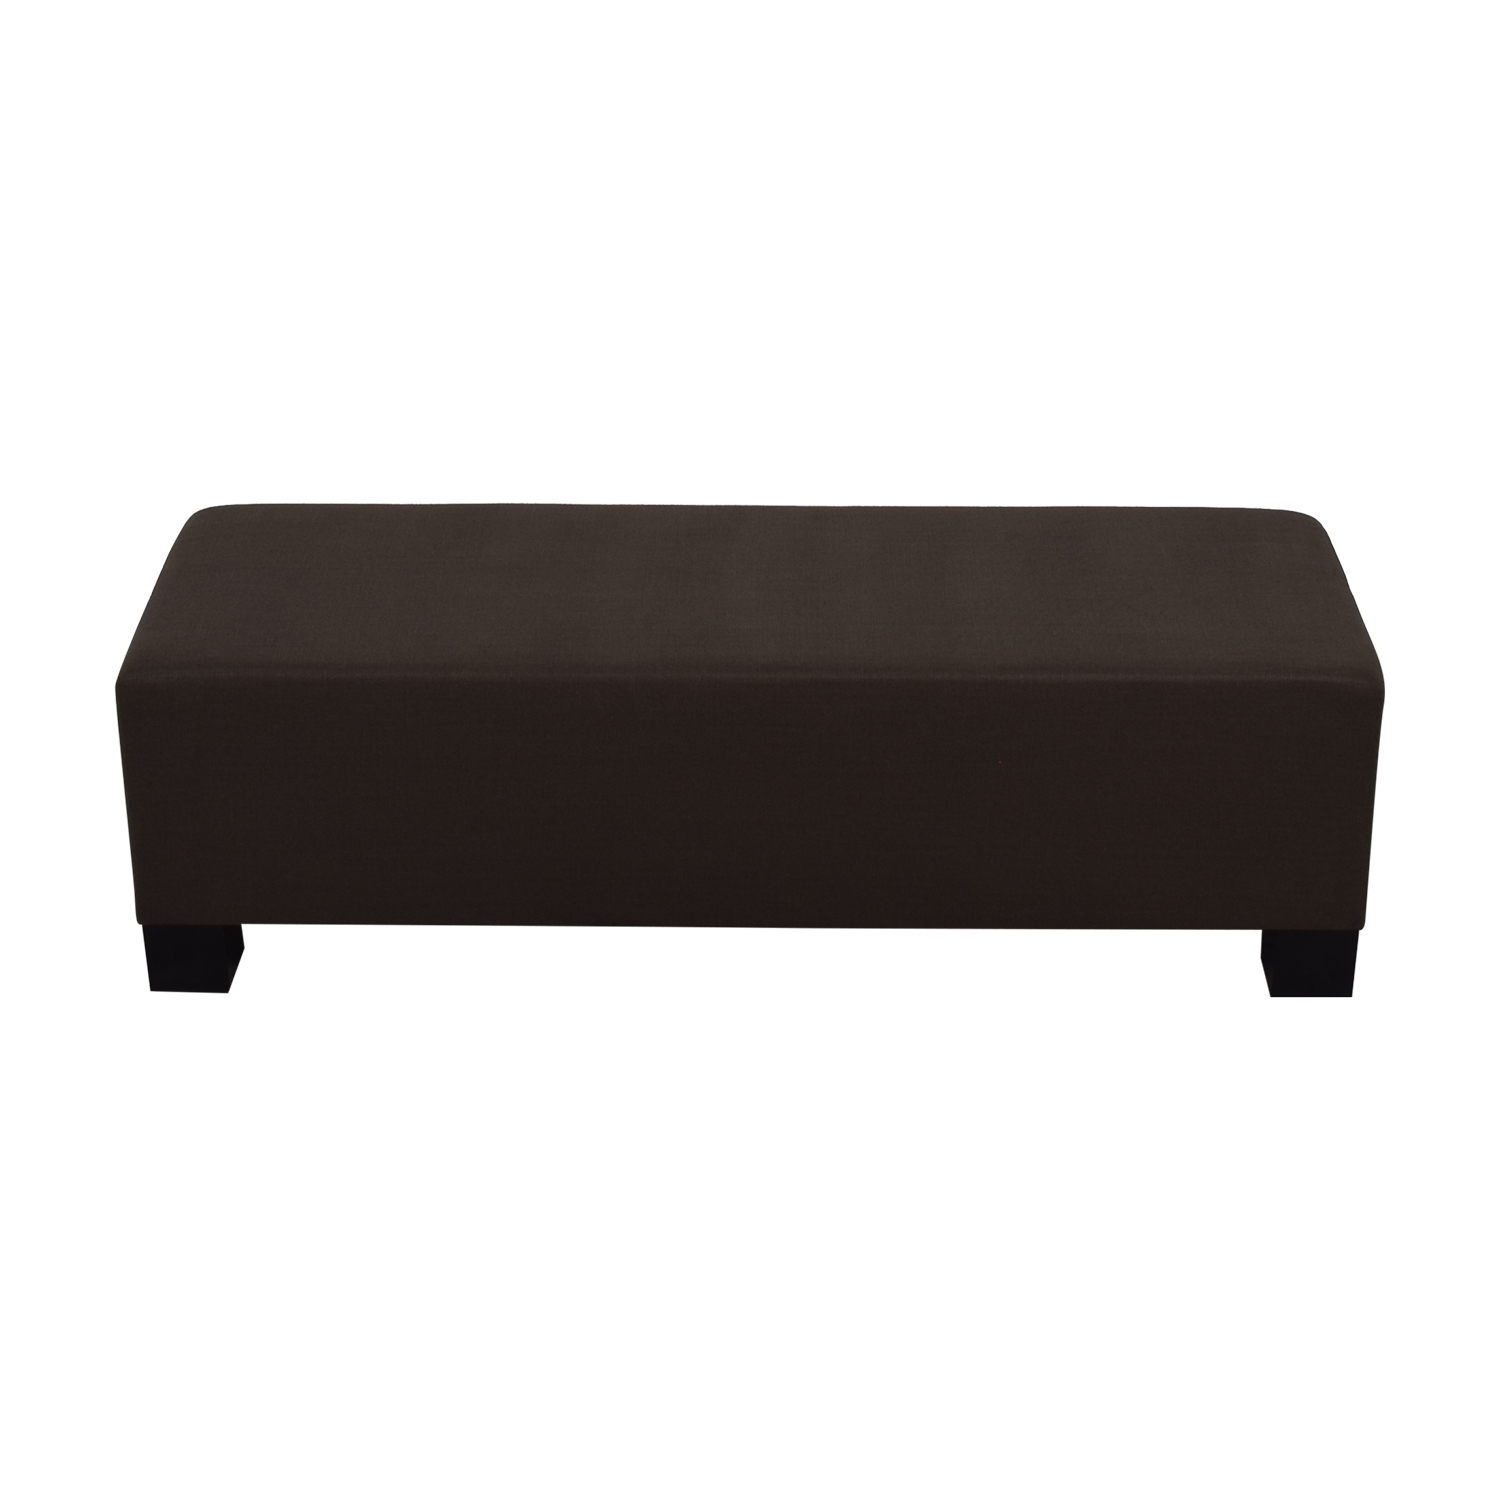 Furniture Masters Grey Bench / Benches